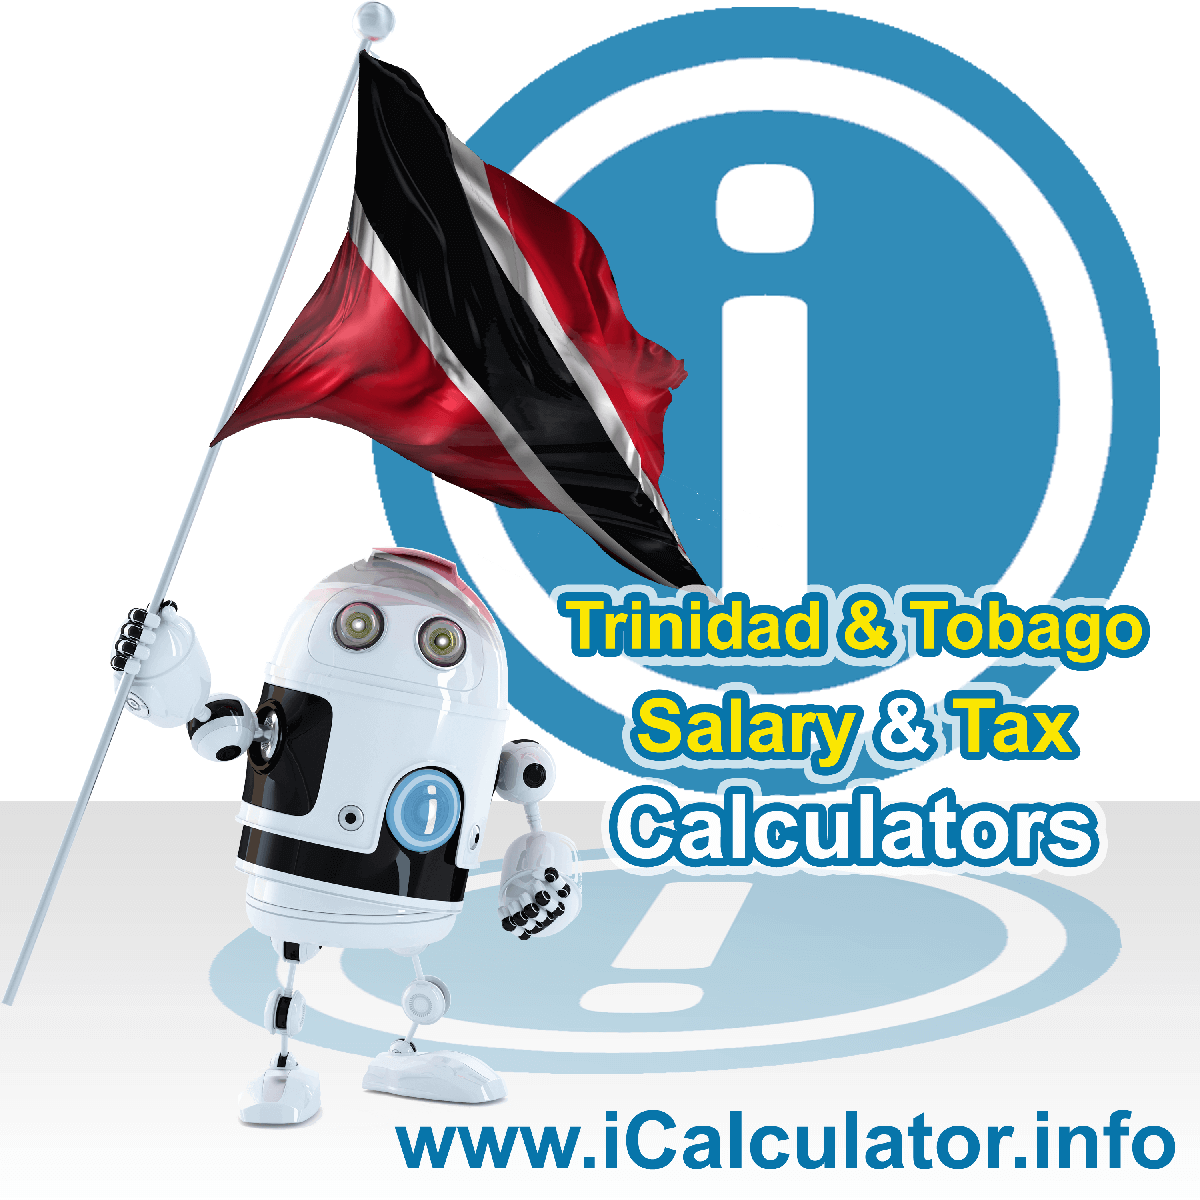 Trinidad And Tobago Wage Calculator. This image shows the Trinidad And Tobago flag and information relating to the tax formula for the Trinidad And Tobago Tax Calculator